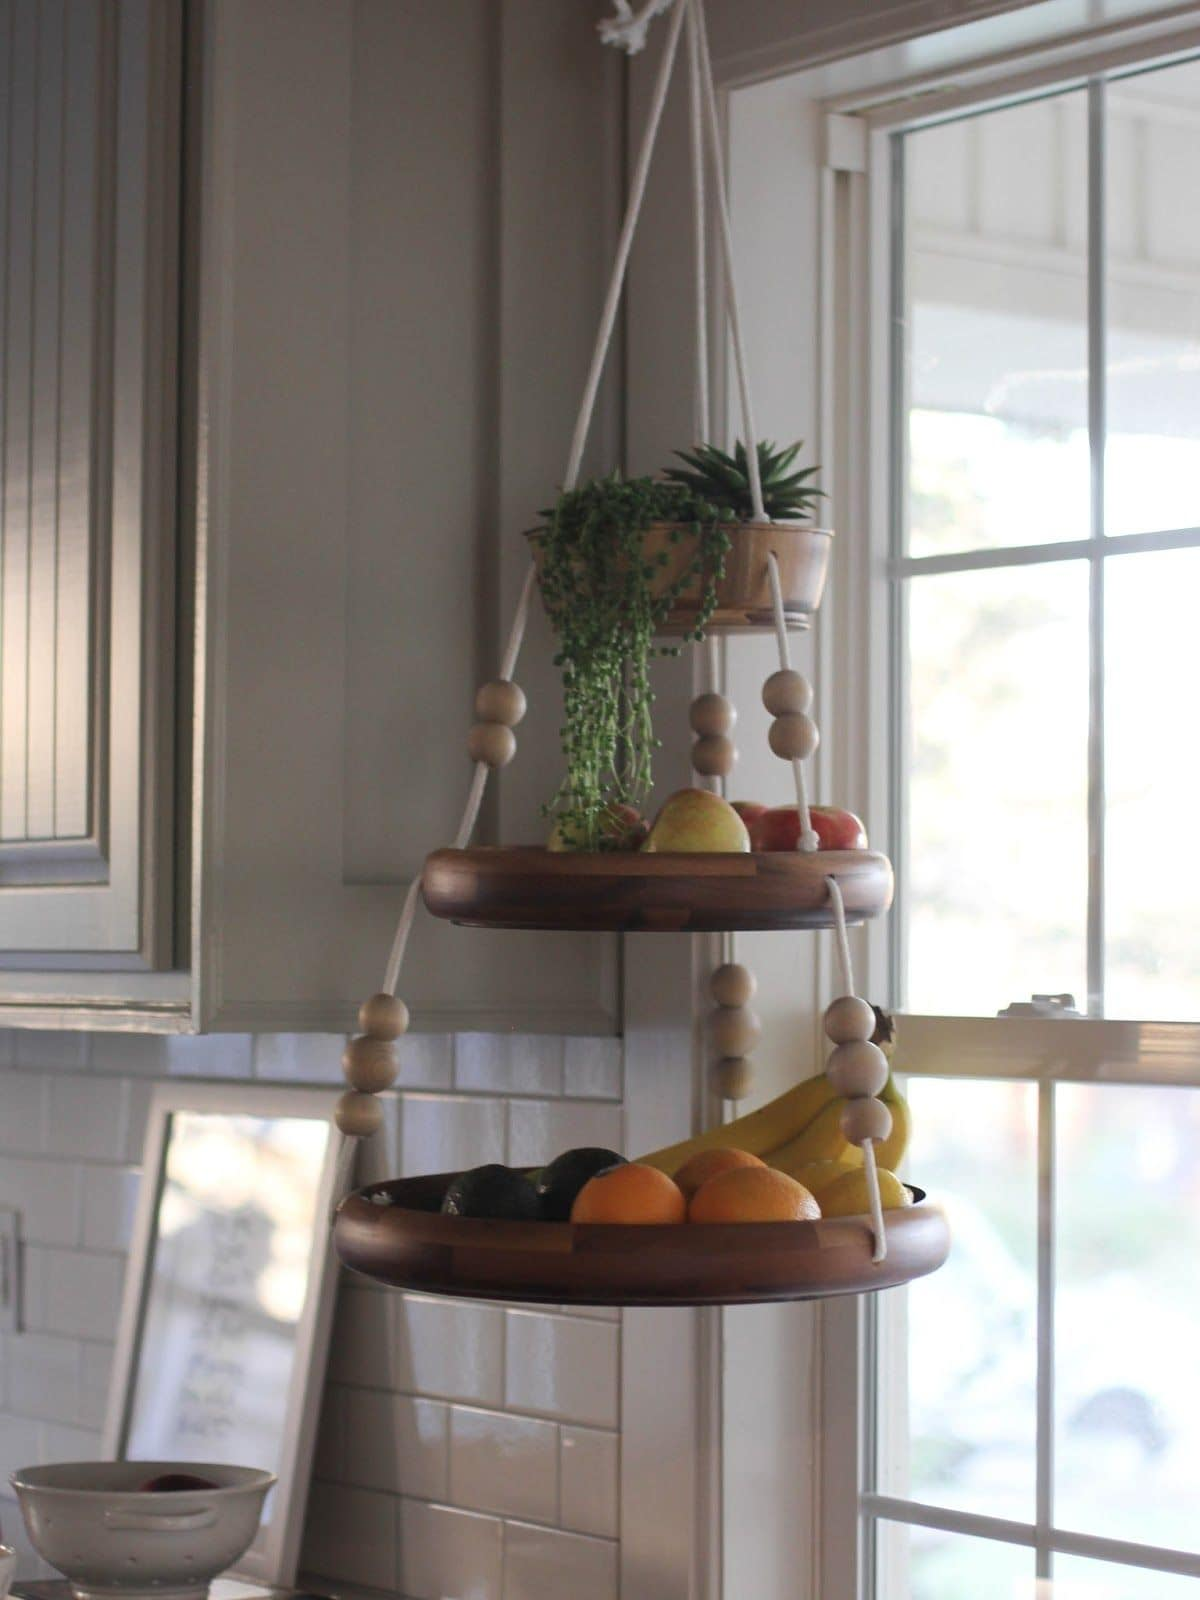 Hanging in front of a window is a 3 tier hanging shelf with fruit on each level